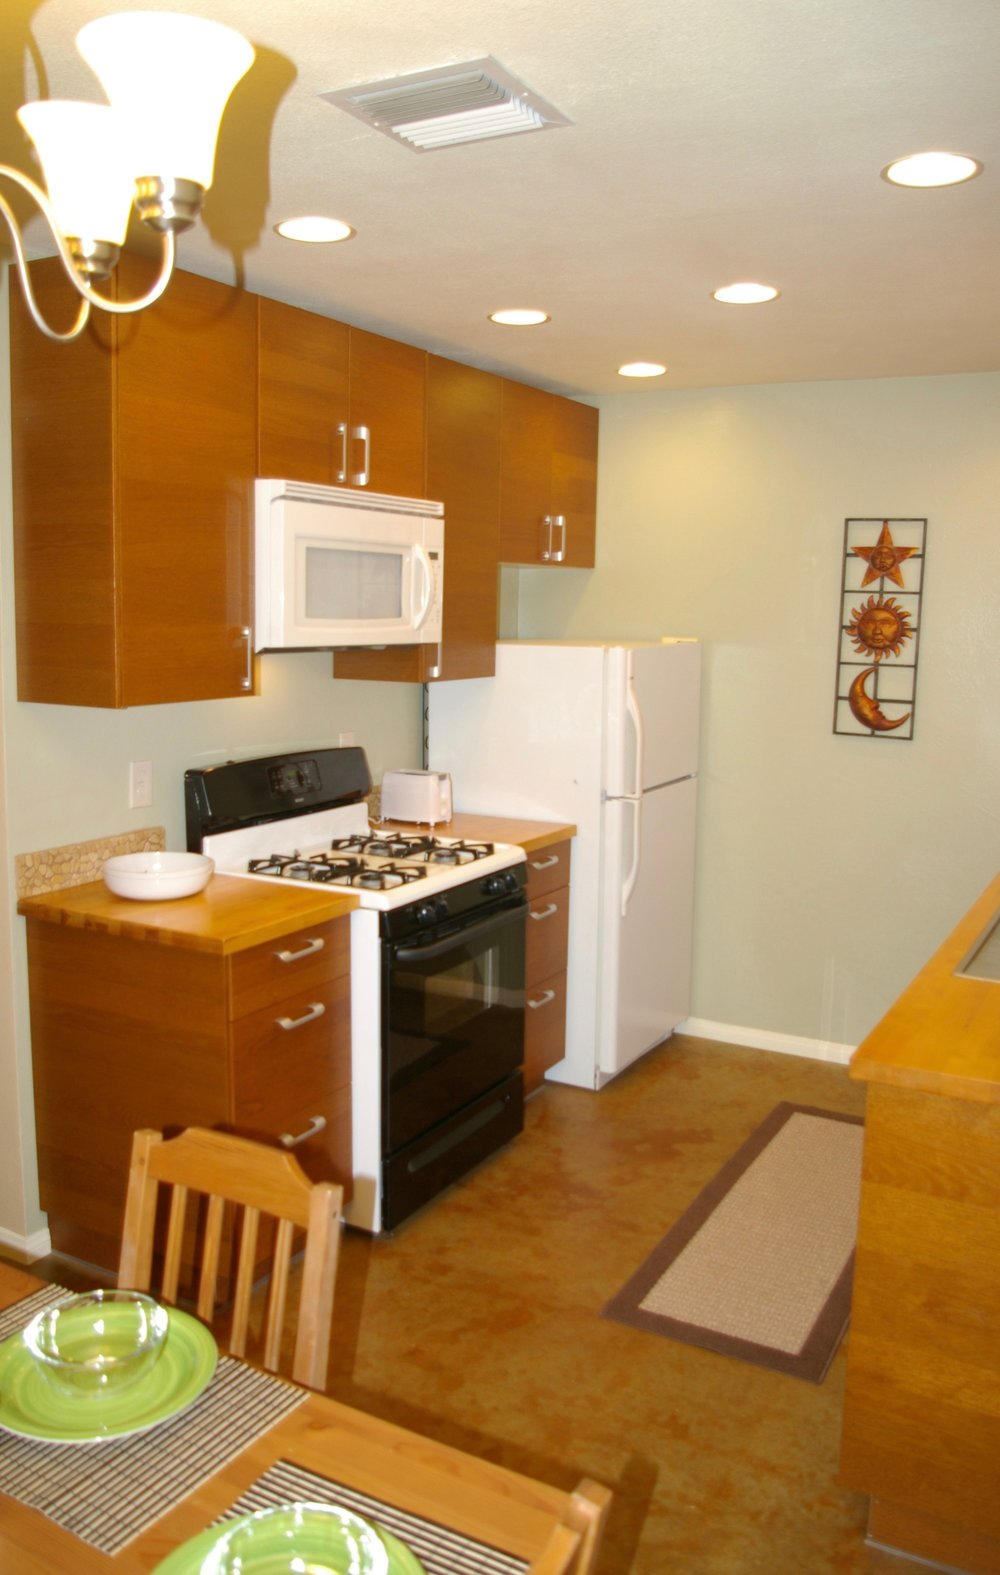 Rent29 Cactus West Kitchen